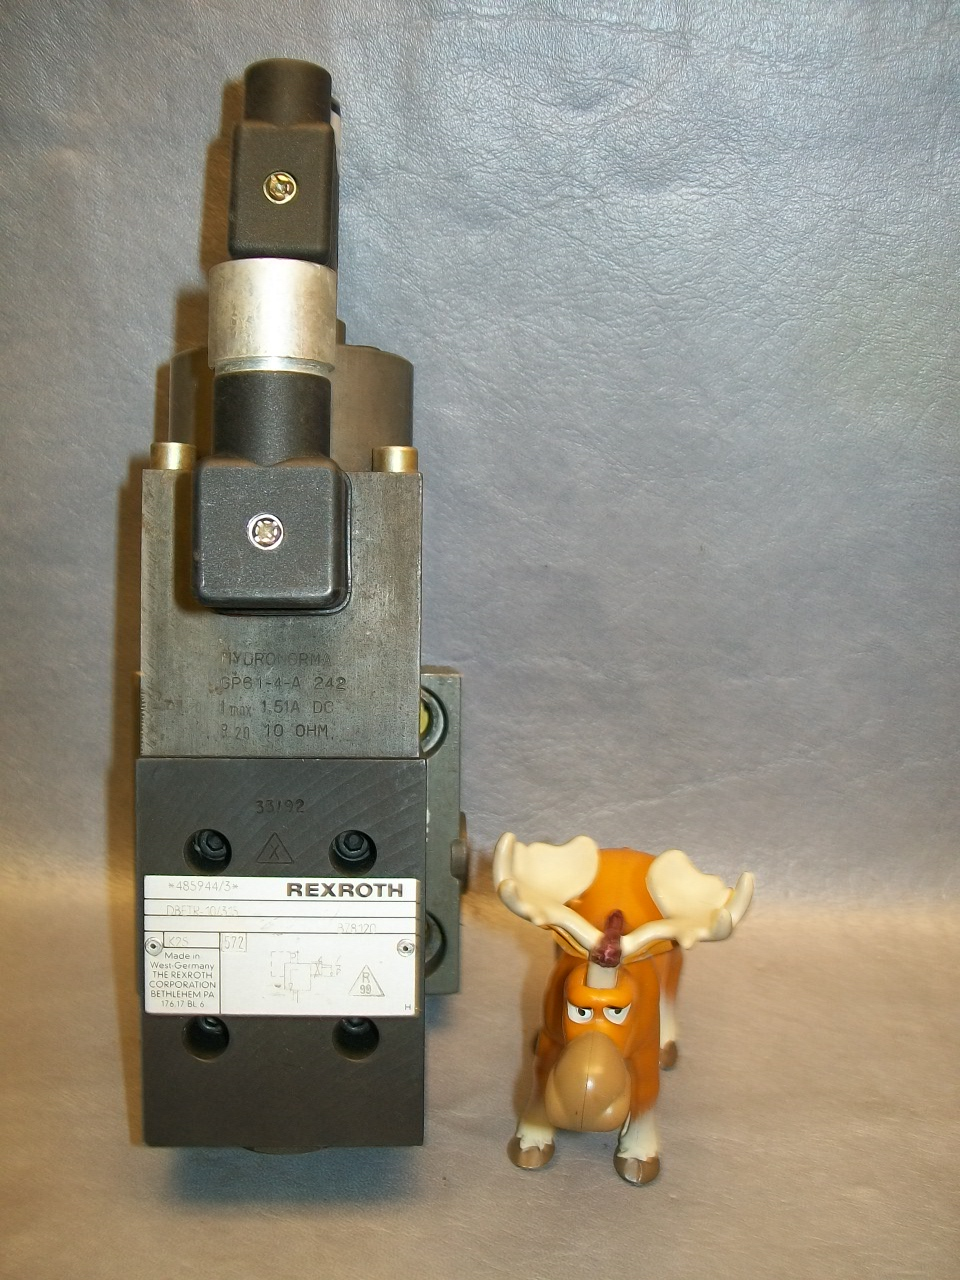 hight resolution of rexroth lfa25dbemtr60 315 12 hydronorma hydraulic valve assembly